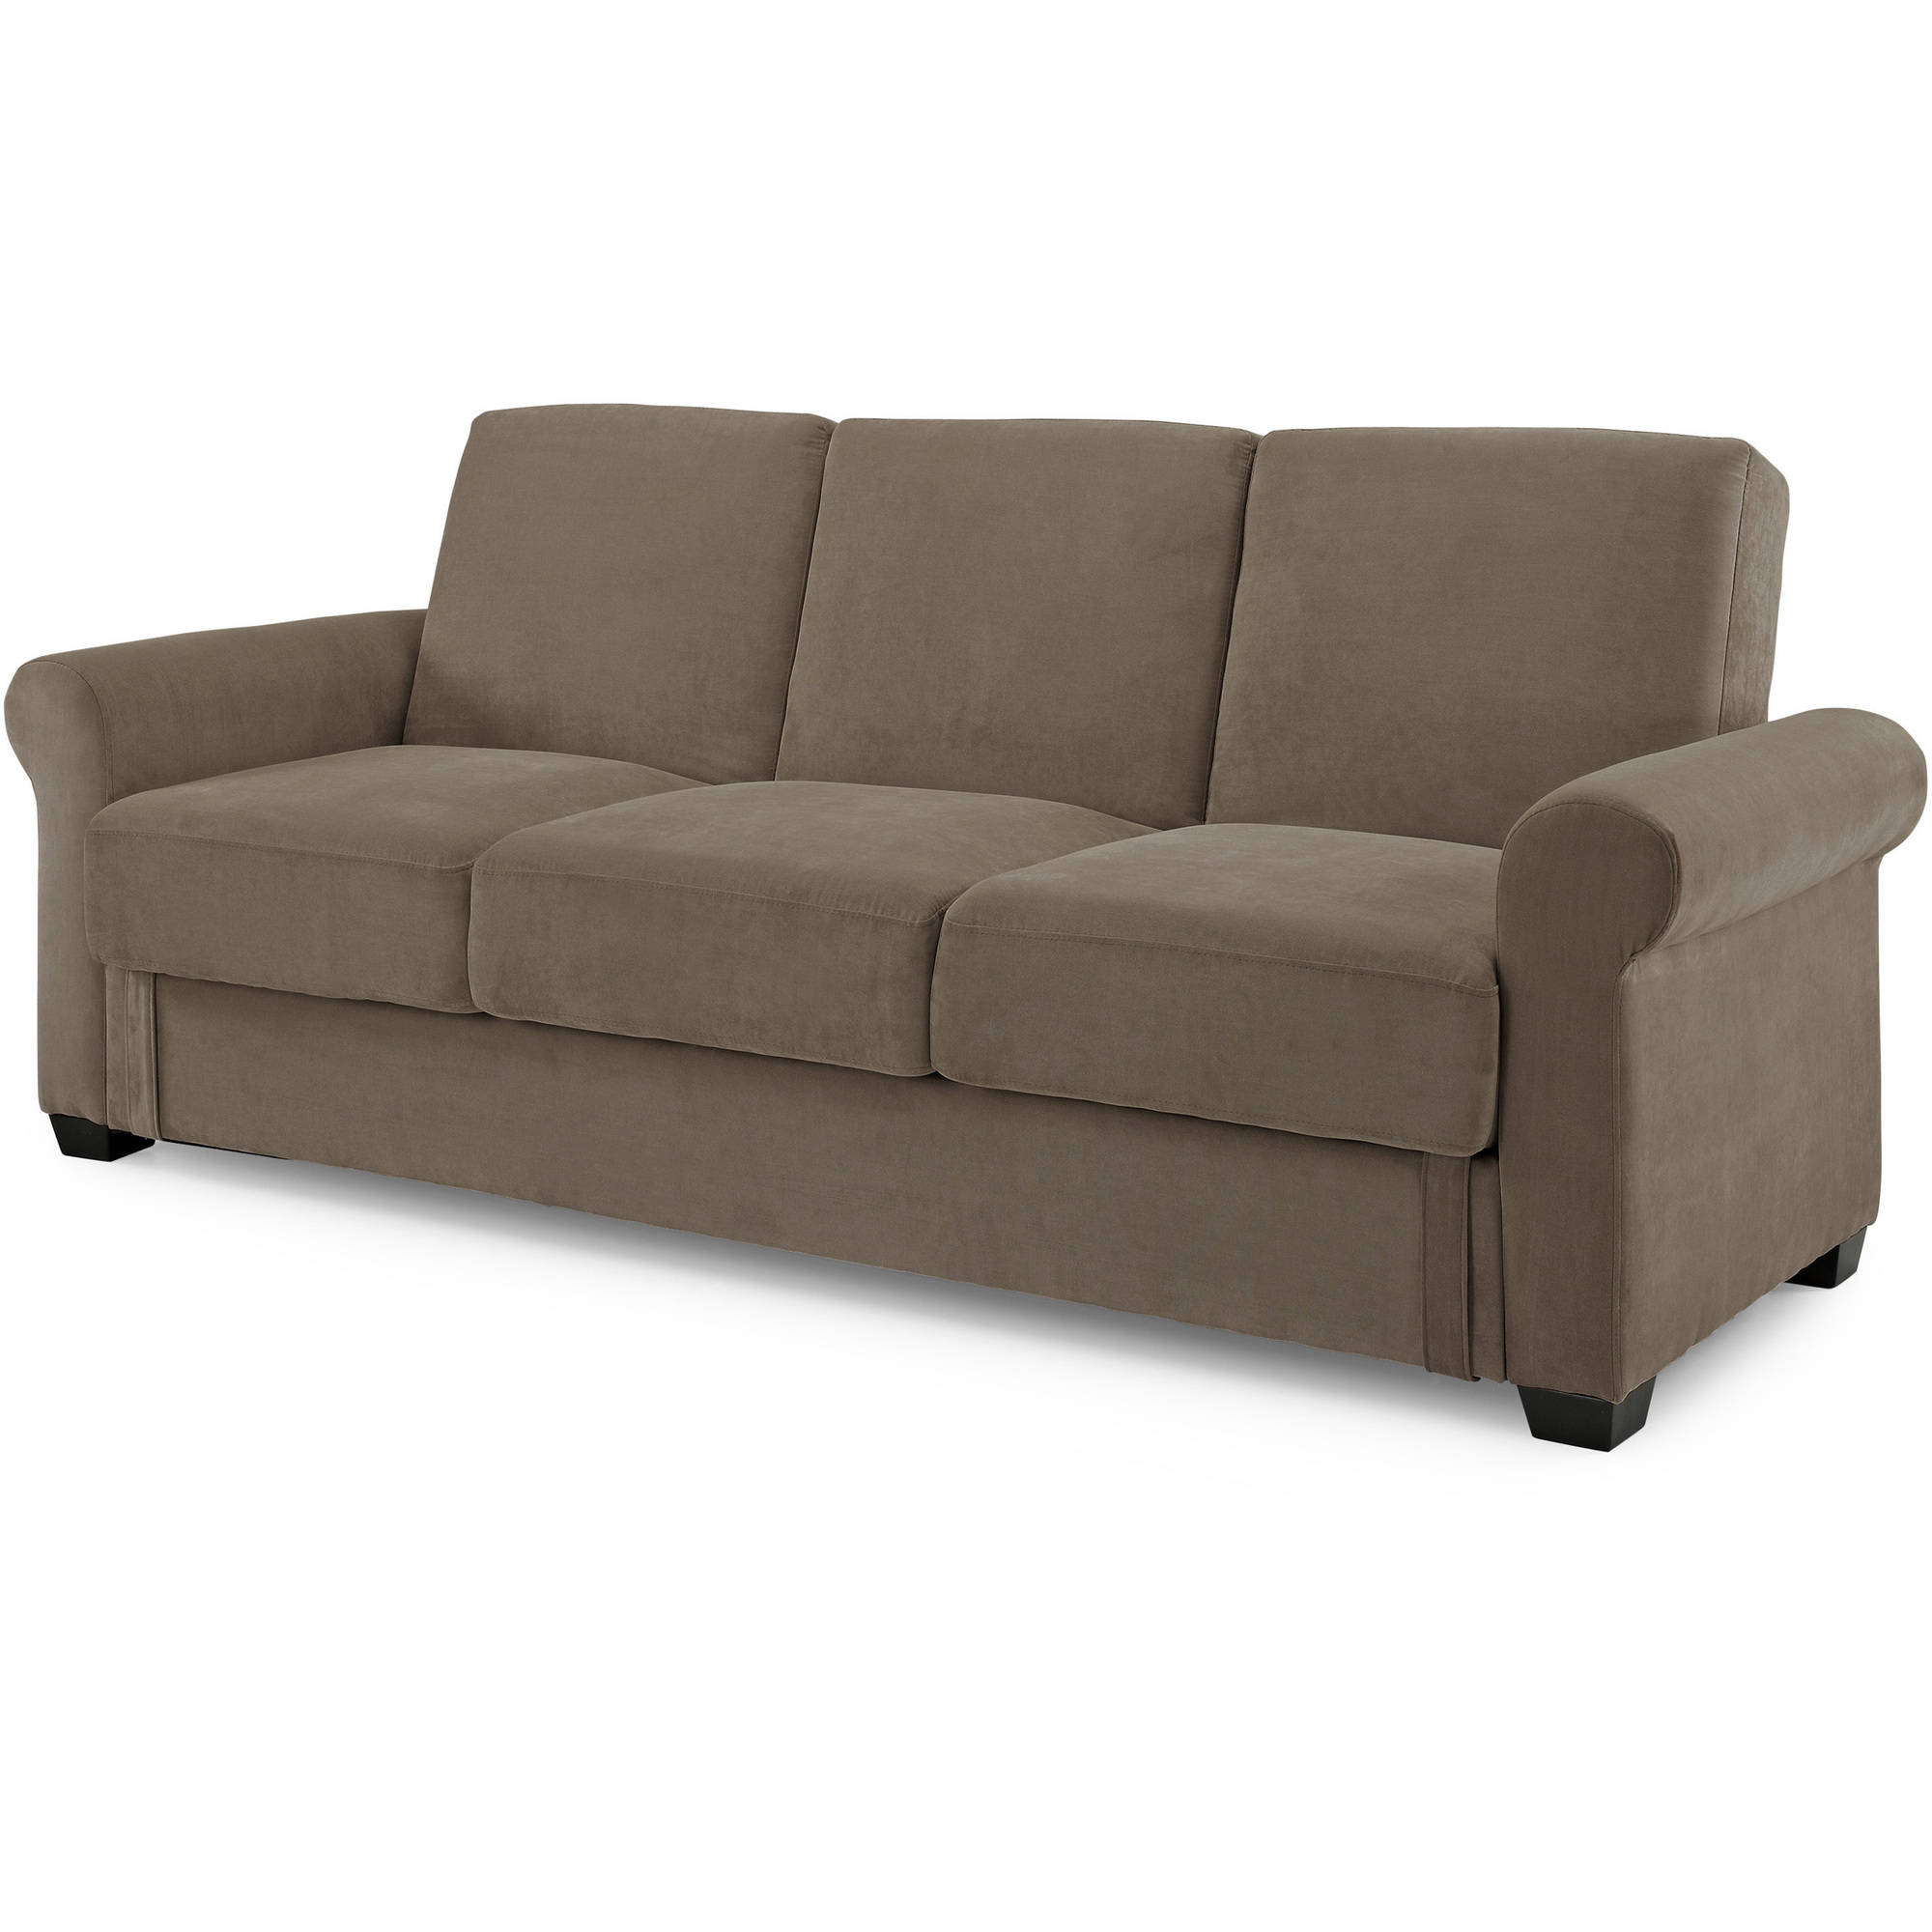 Serta Jason Dream Convertible Sofa, Multiple Colors